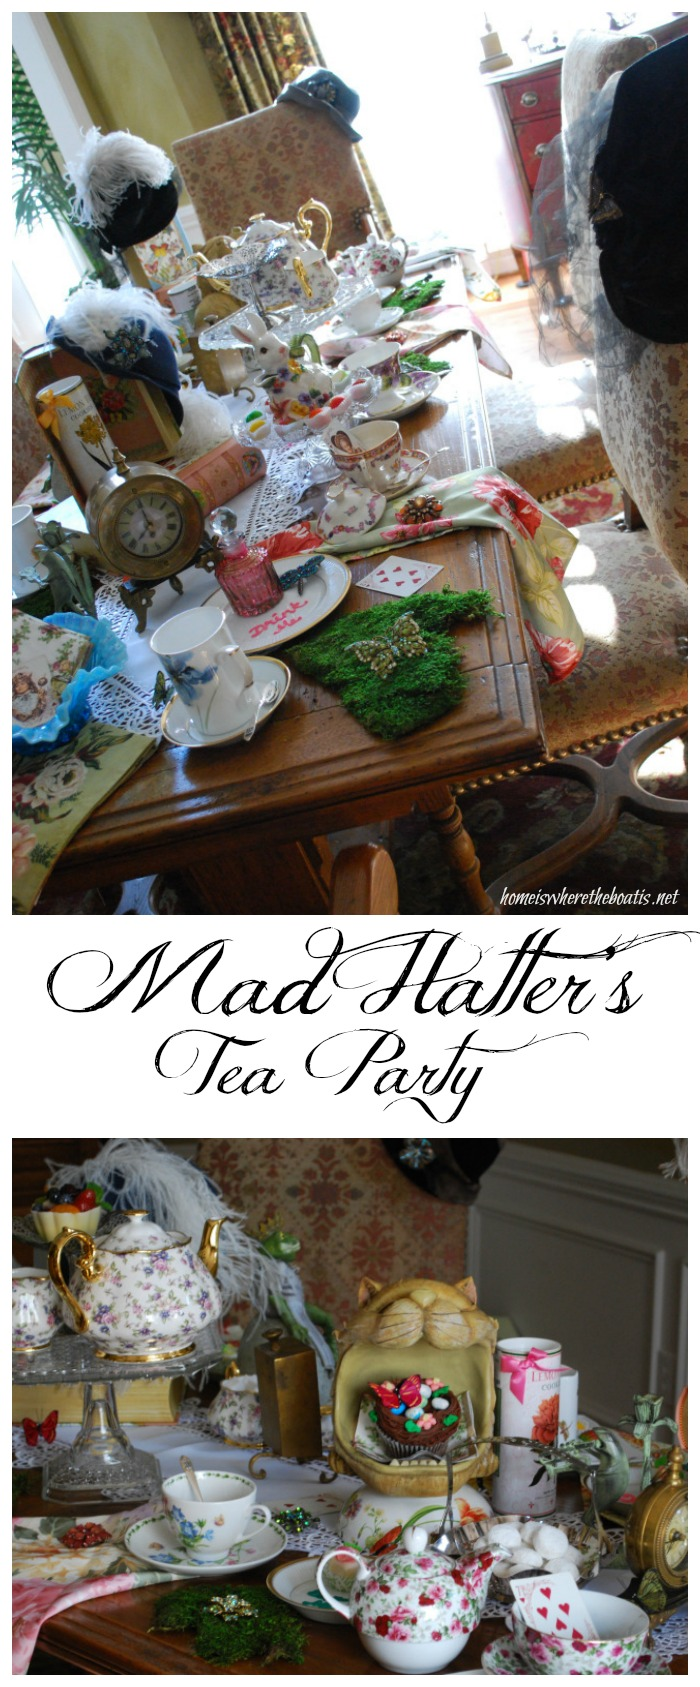 Mad Hatter's Tea Party | homeiswheretheboatis.net